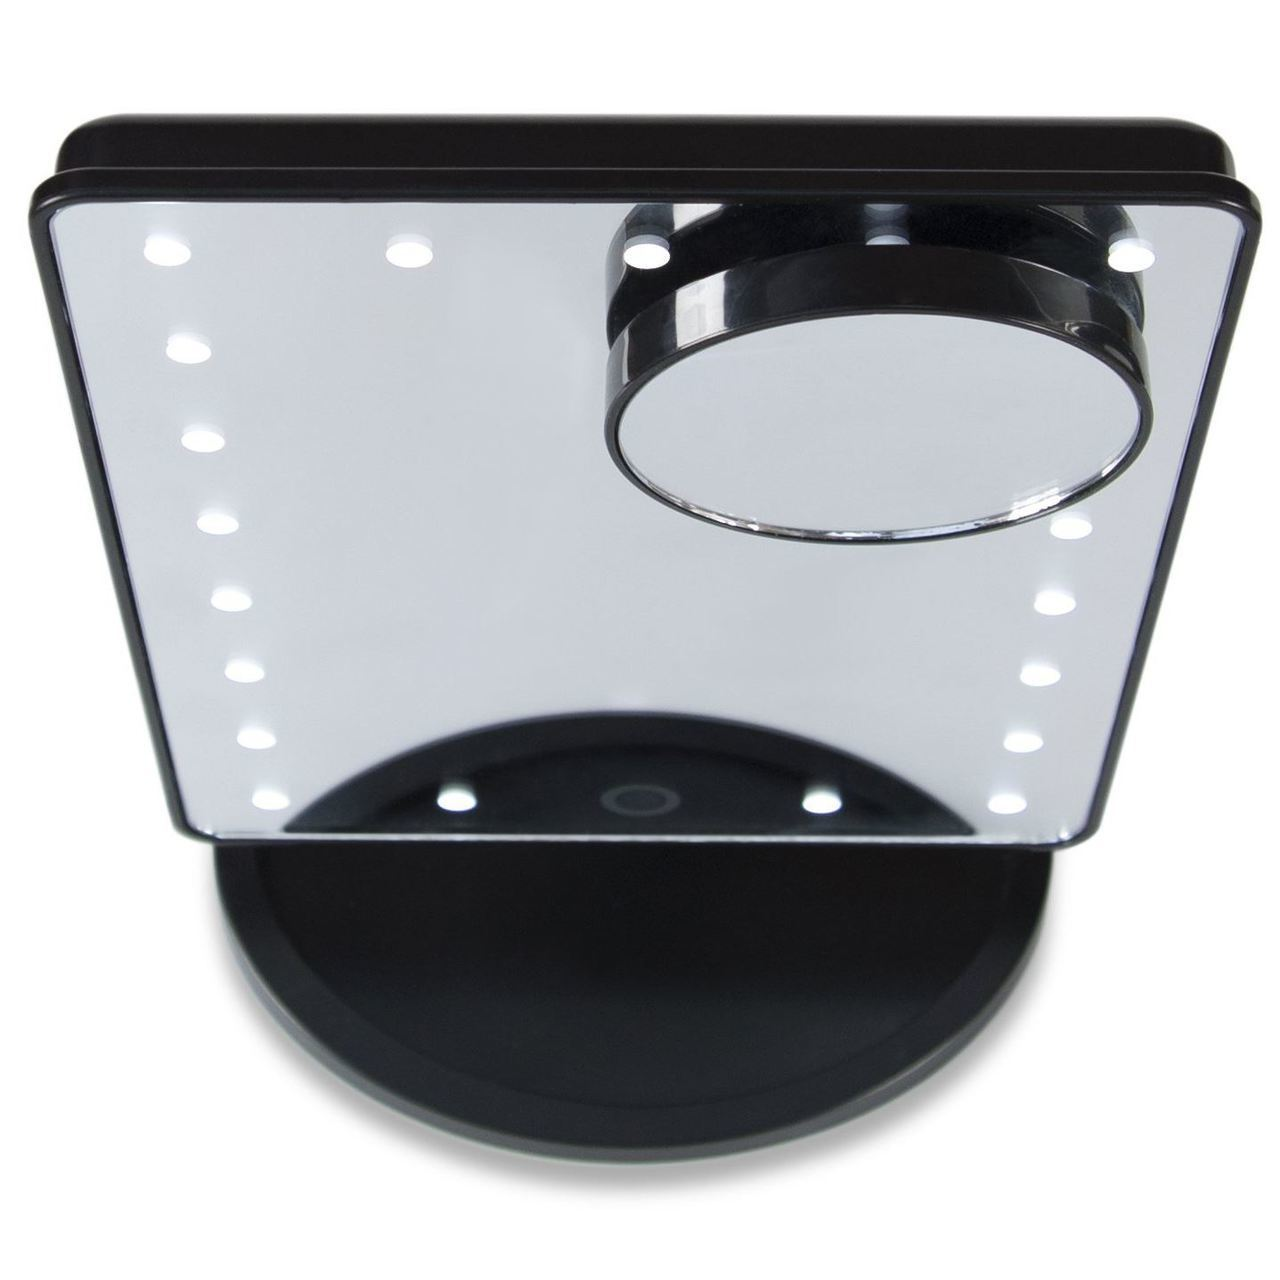 LED Dimmable Makeup Mirror image